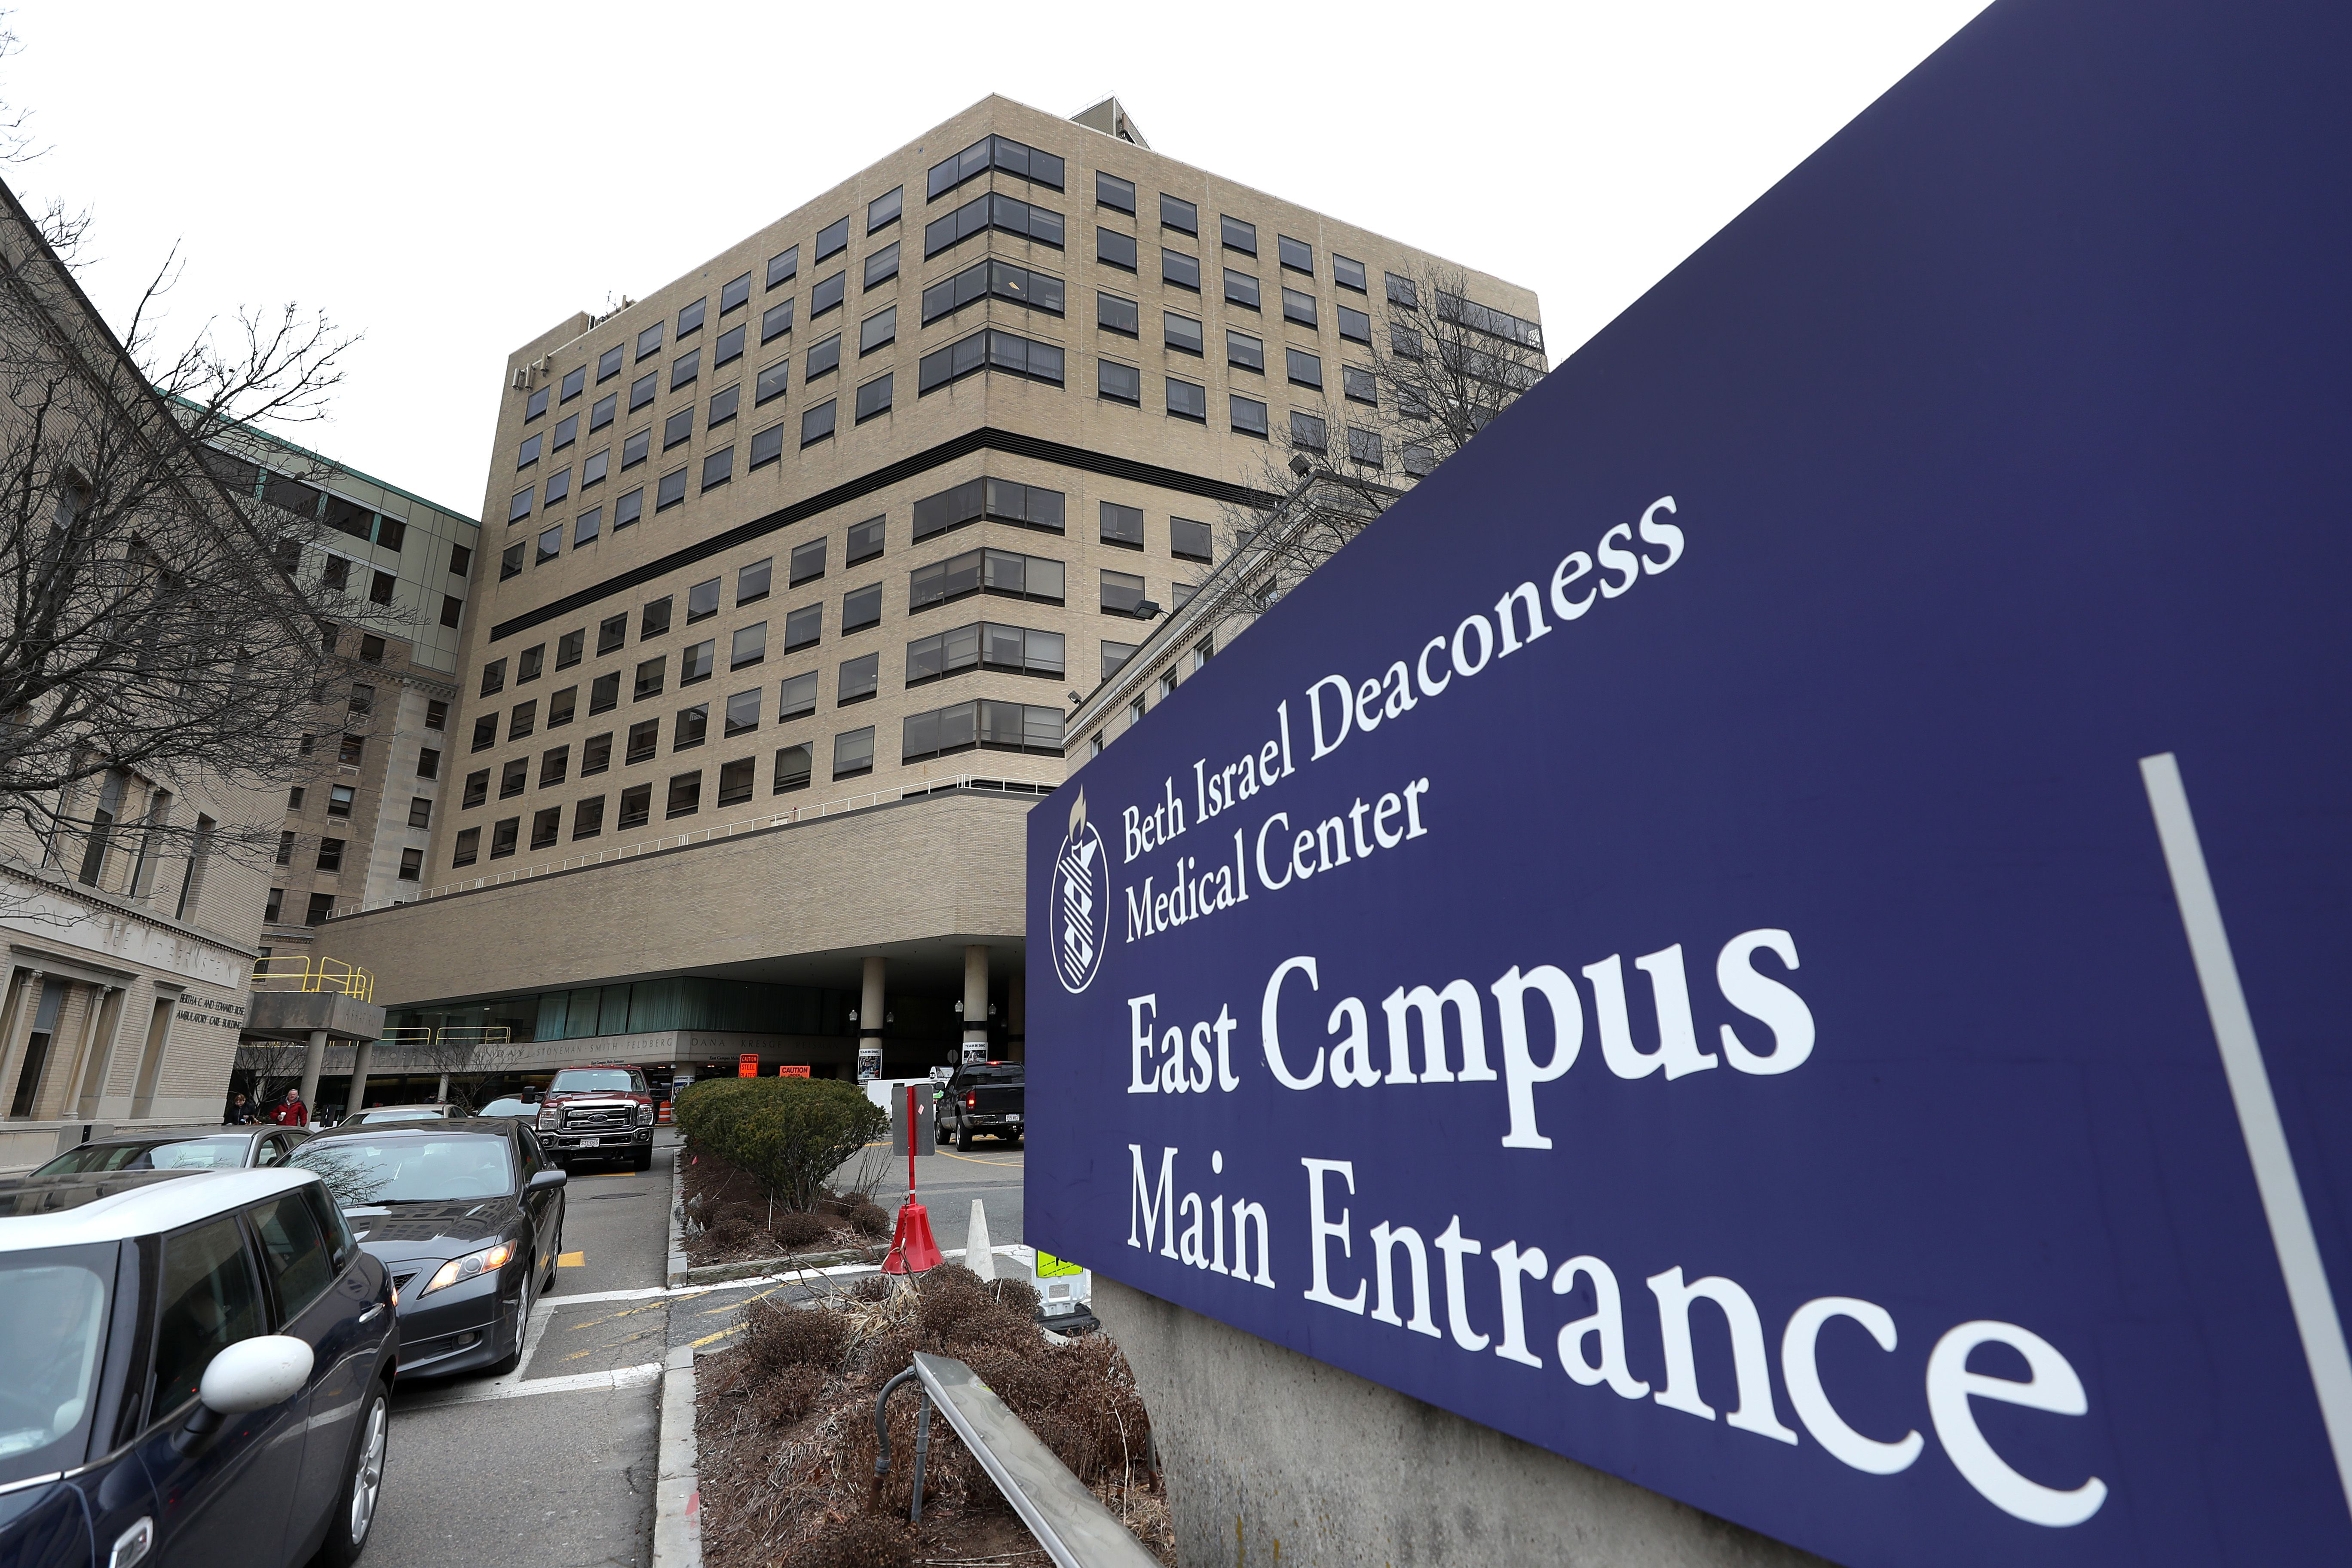 Major Boston Hospital Finds Dramatic Drop In Stroke Heart Attack And Cancer Patients During Coronavirus Pandemic The Boston Globe